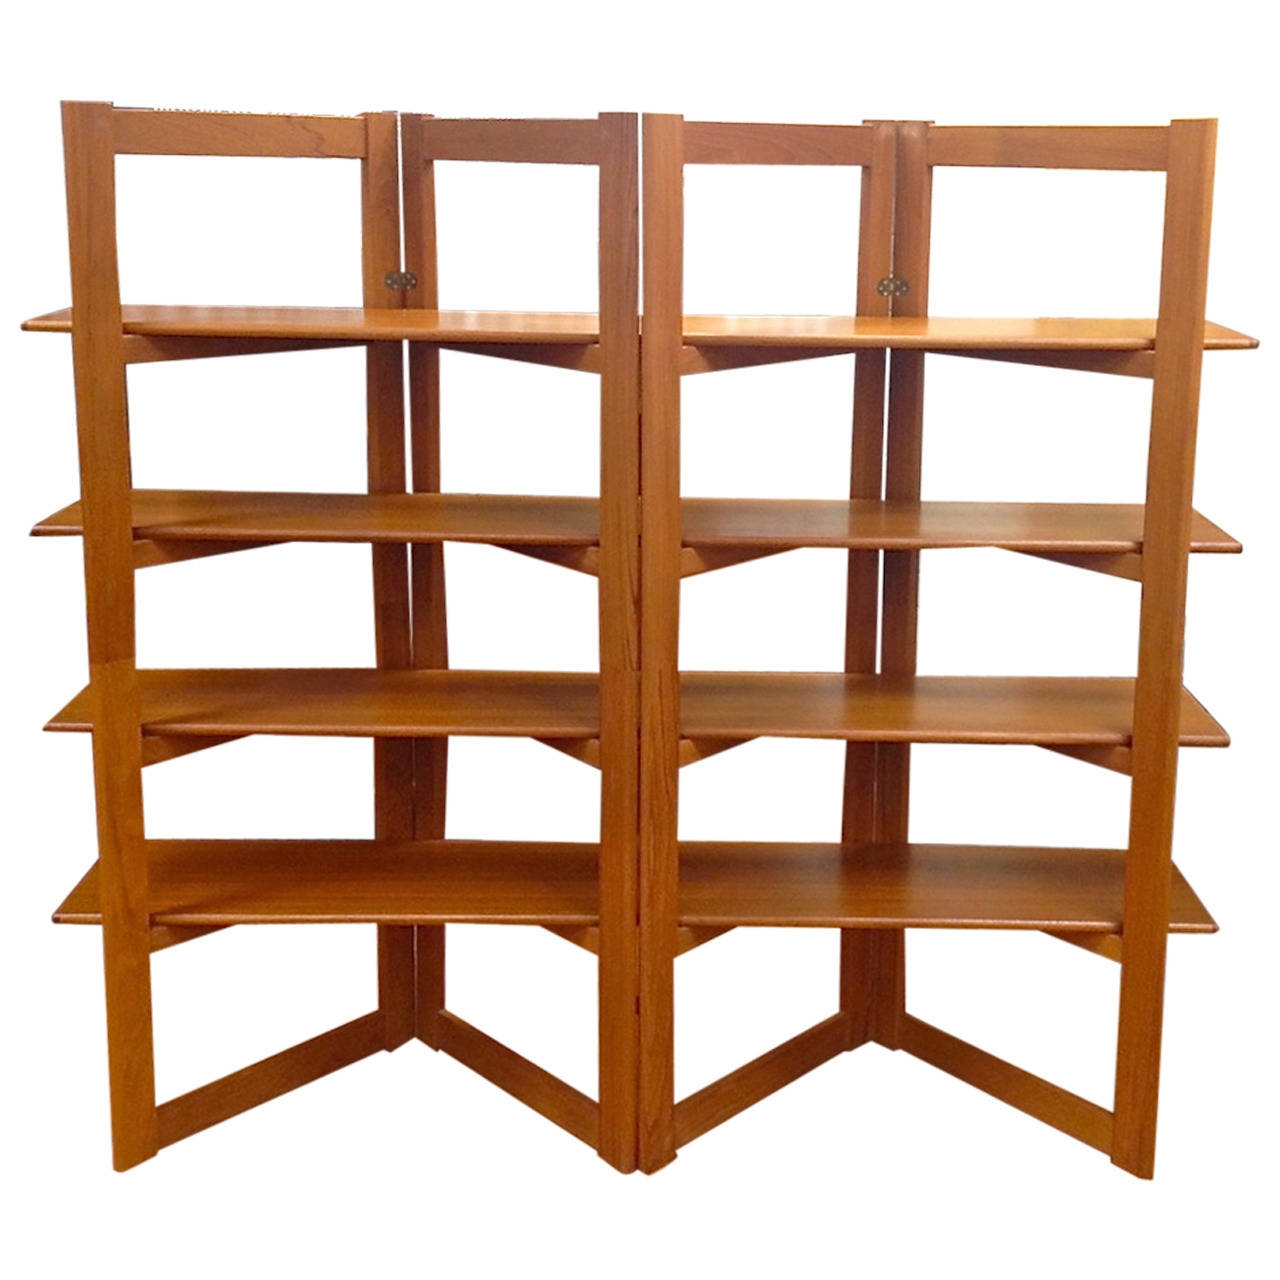 Danish Modern Teak Freestanding Room Divider Bookshelf Pertaining To Freestanding Bookshelves (#3 of 15)